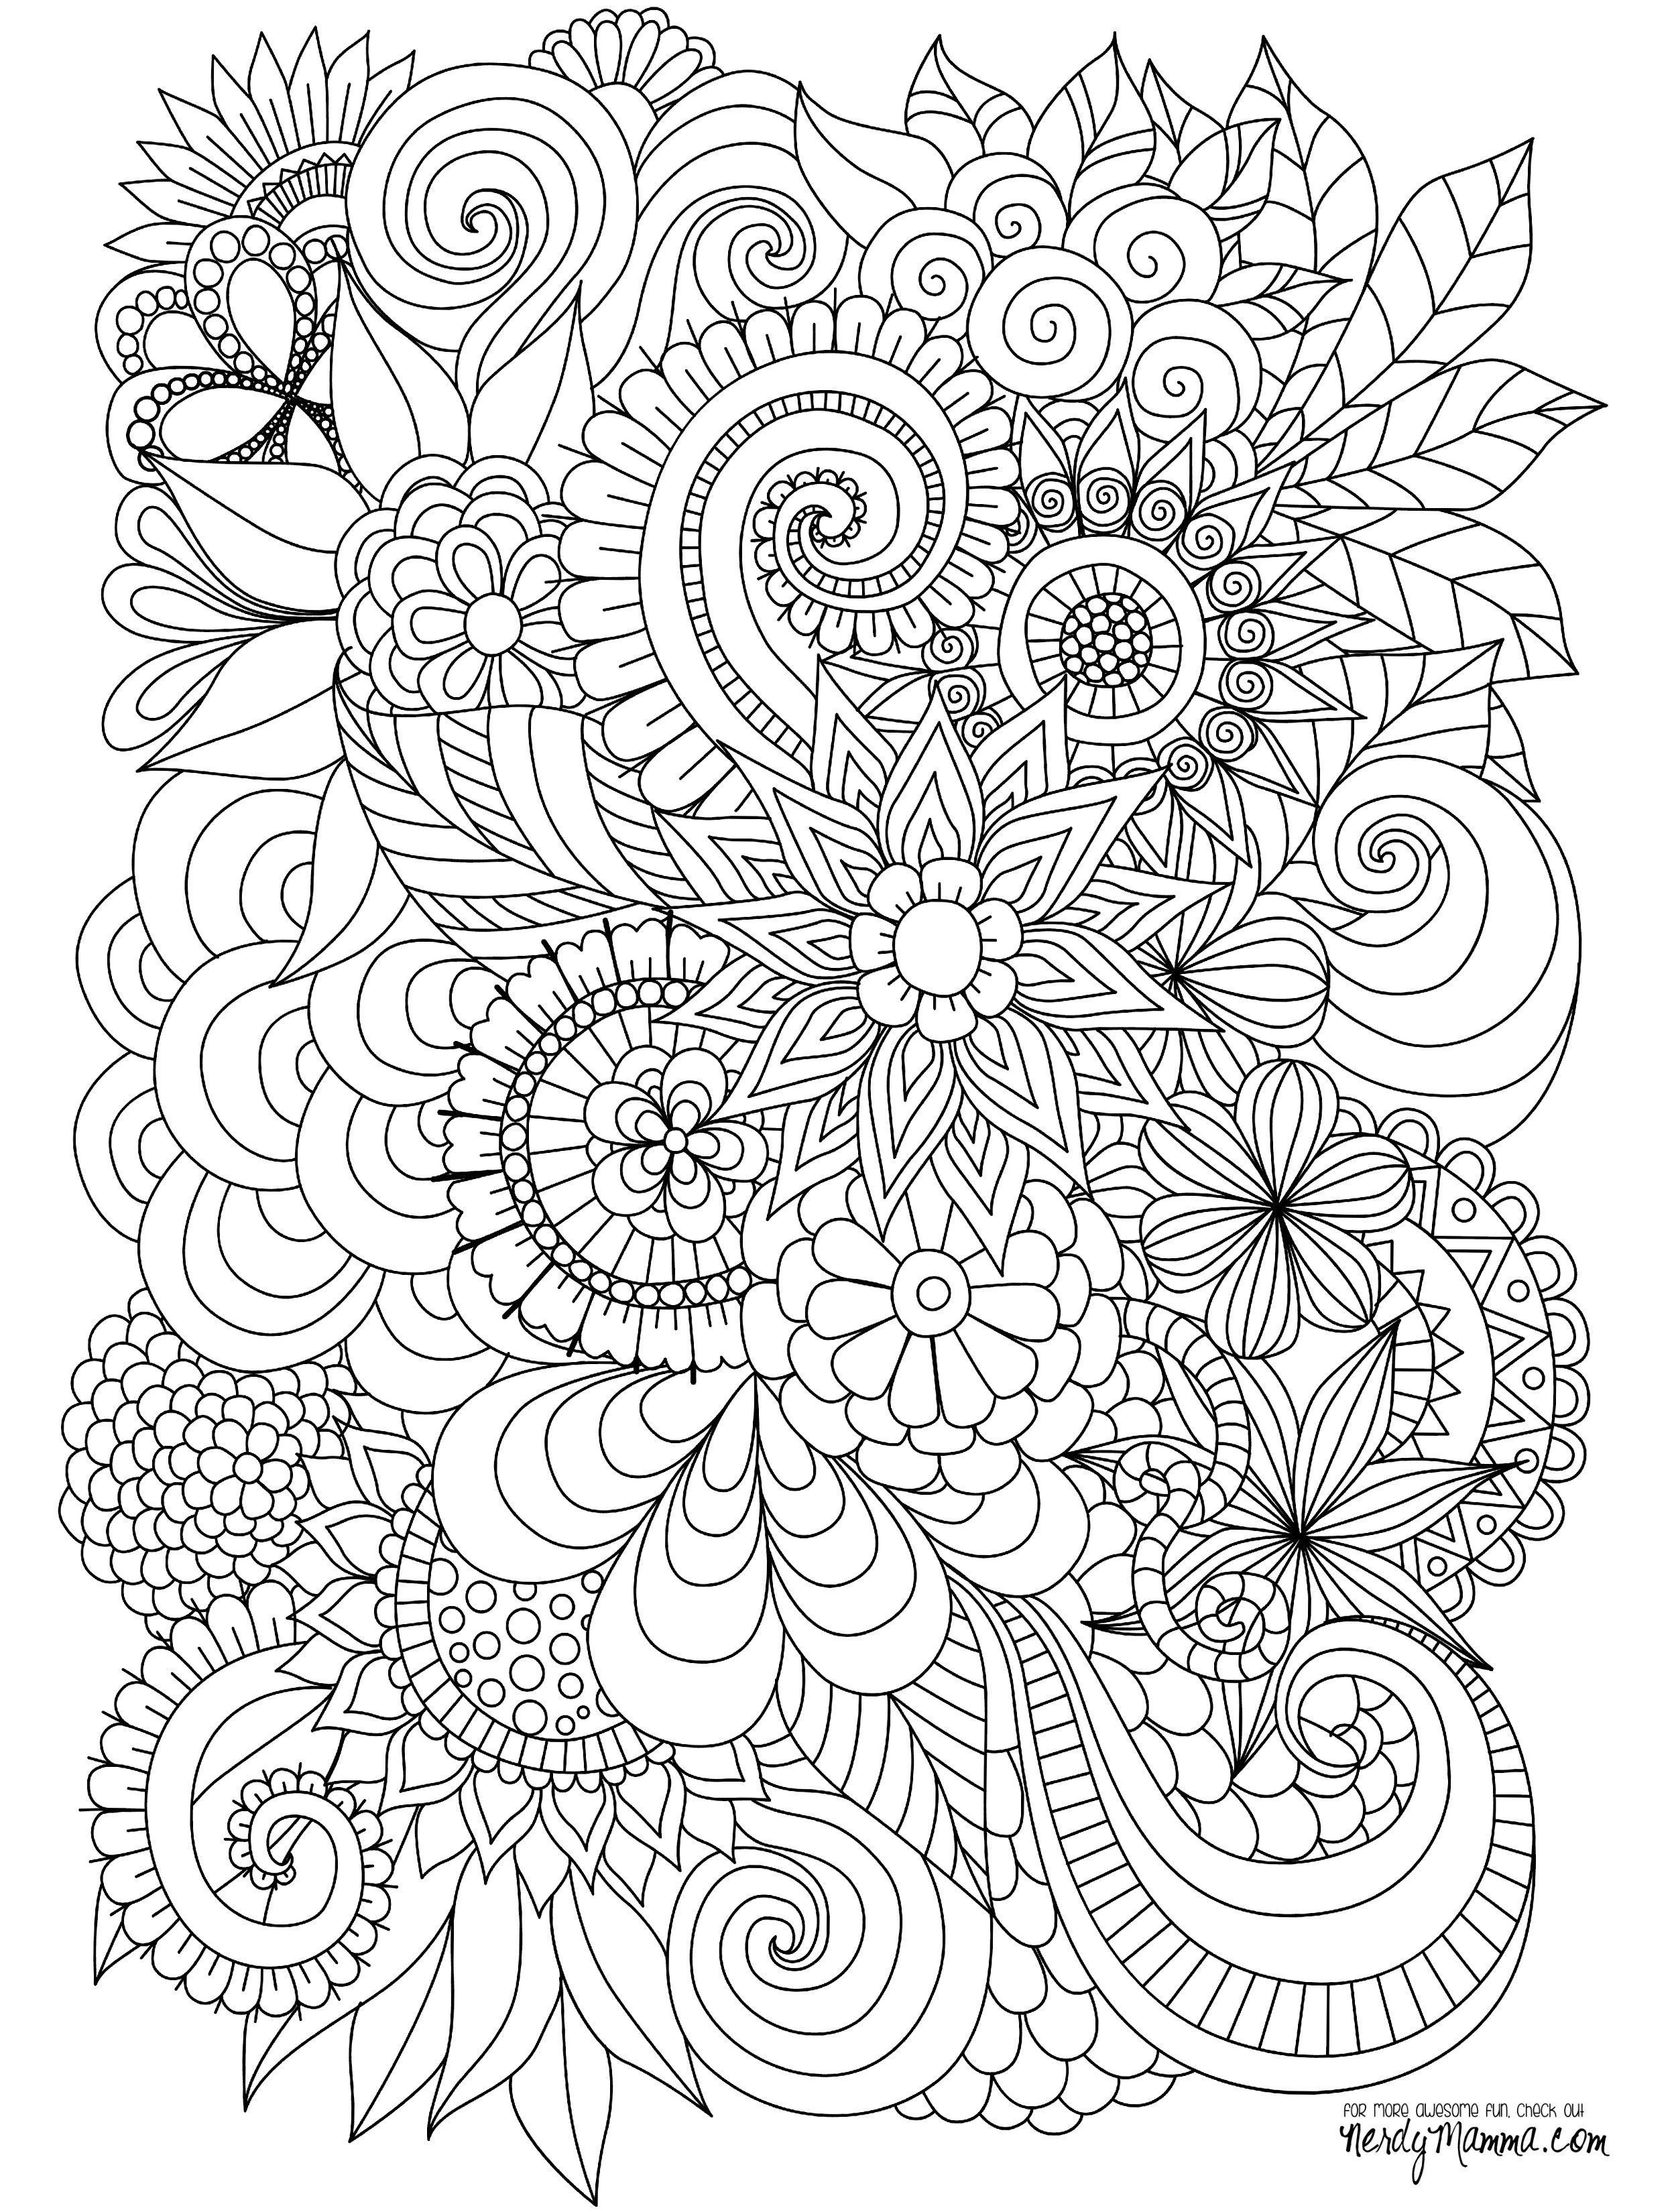 Advanced Flower Coloring Pages To Print To Print Halaman Mewarnai Bunga Buku Mewarnai Halaman Mewarnai